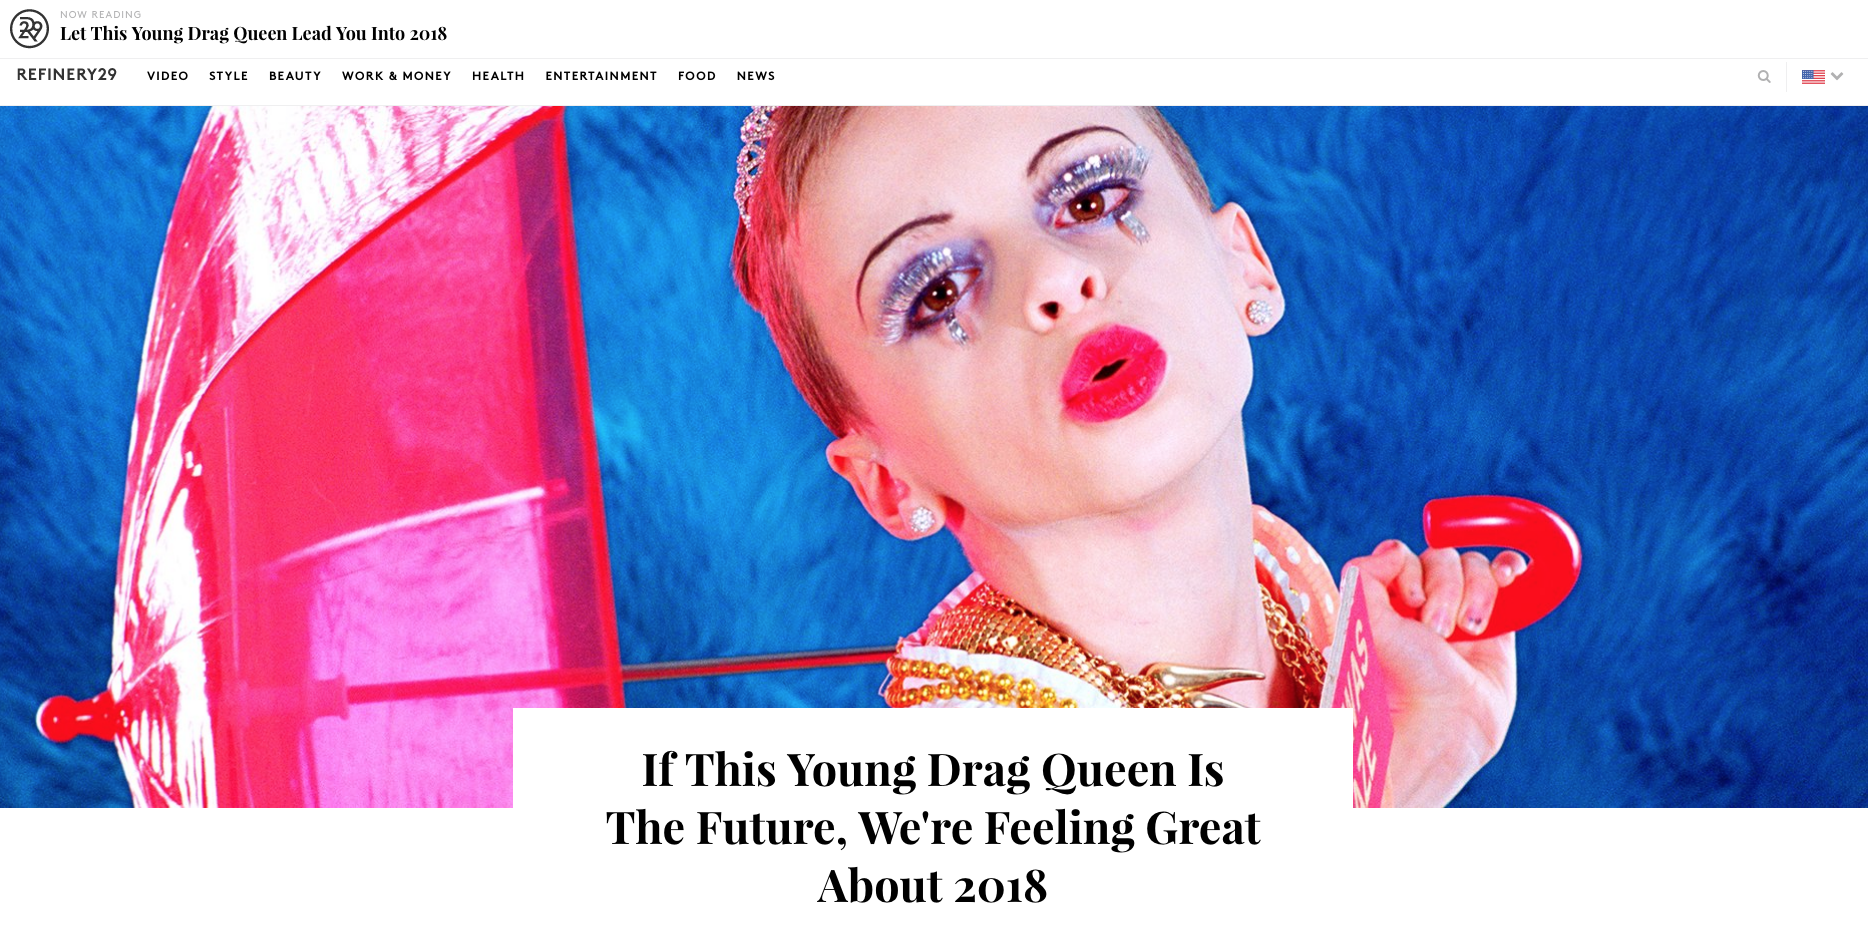 If This Young Drag Queen Is The Future, We're Feeling Great About 2018 - Refinery29 - December 29, 2017.png